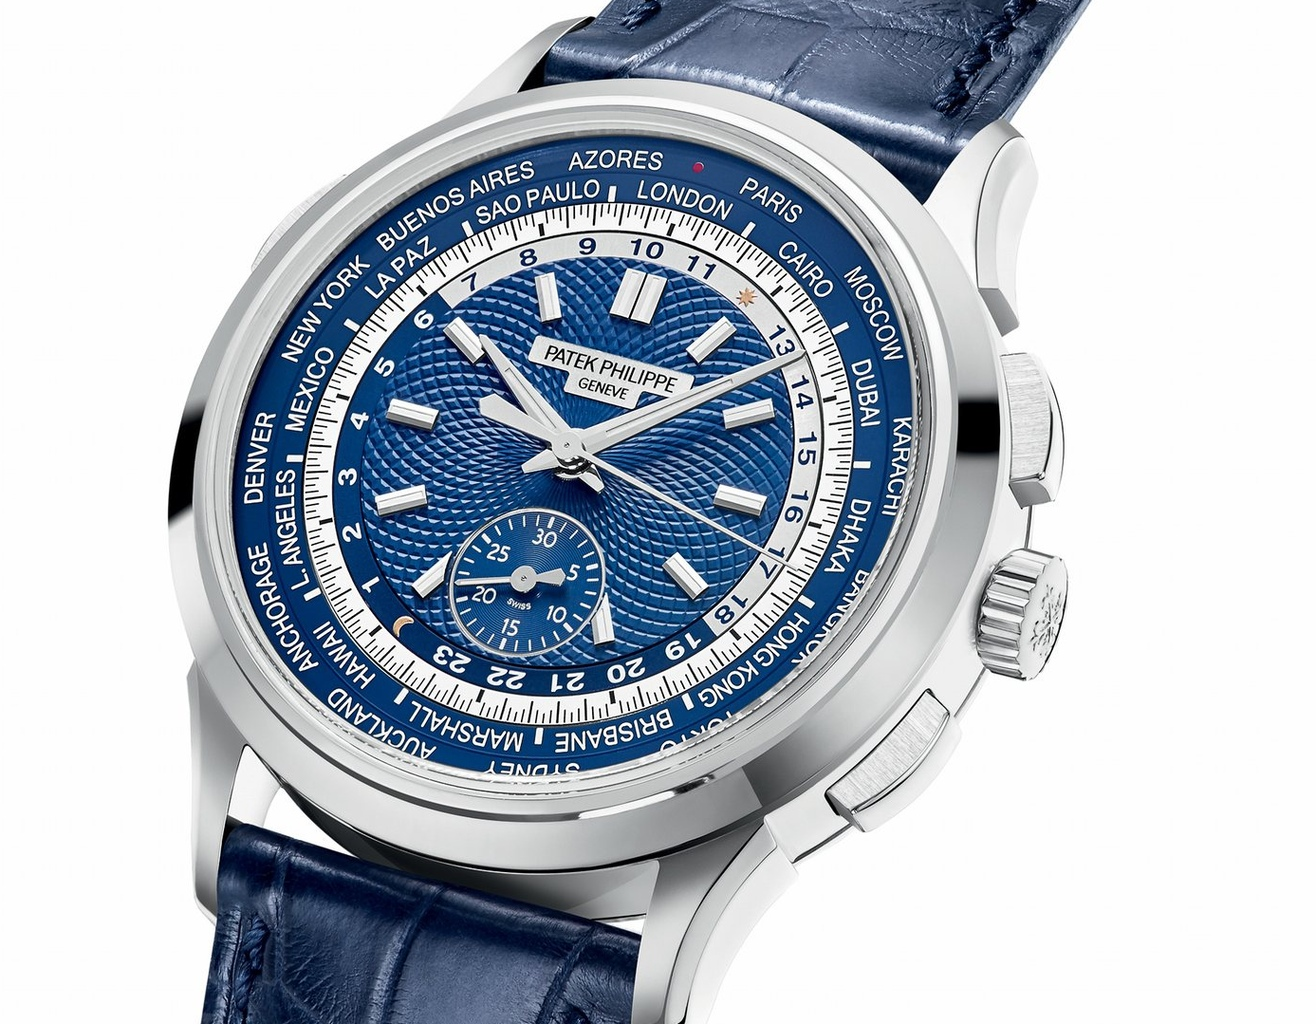 Patek Philippe 5930g World Time Chronograph